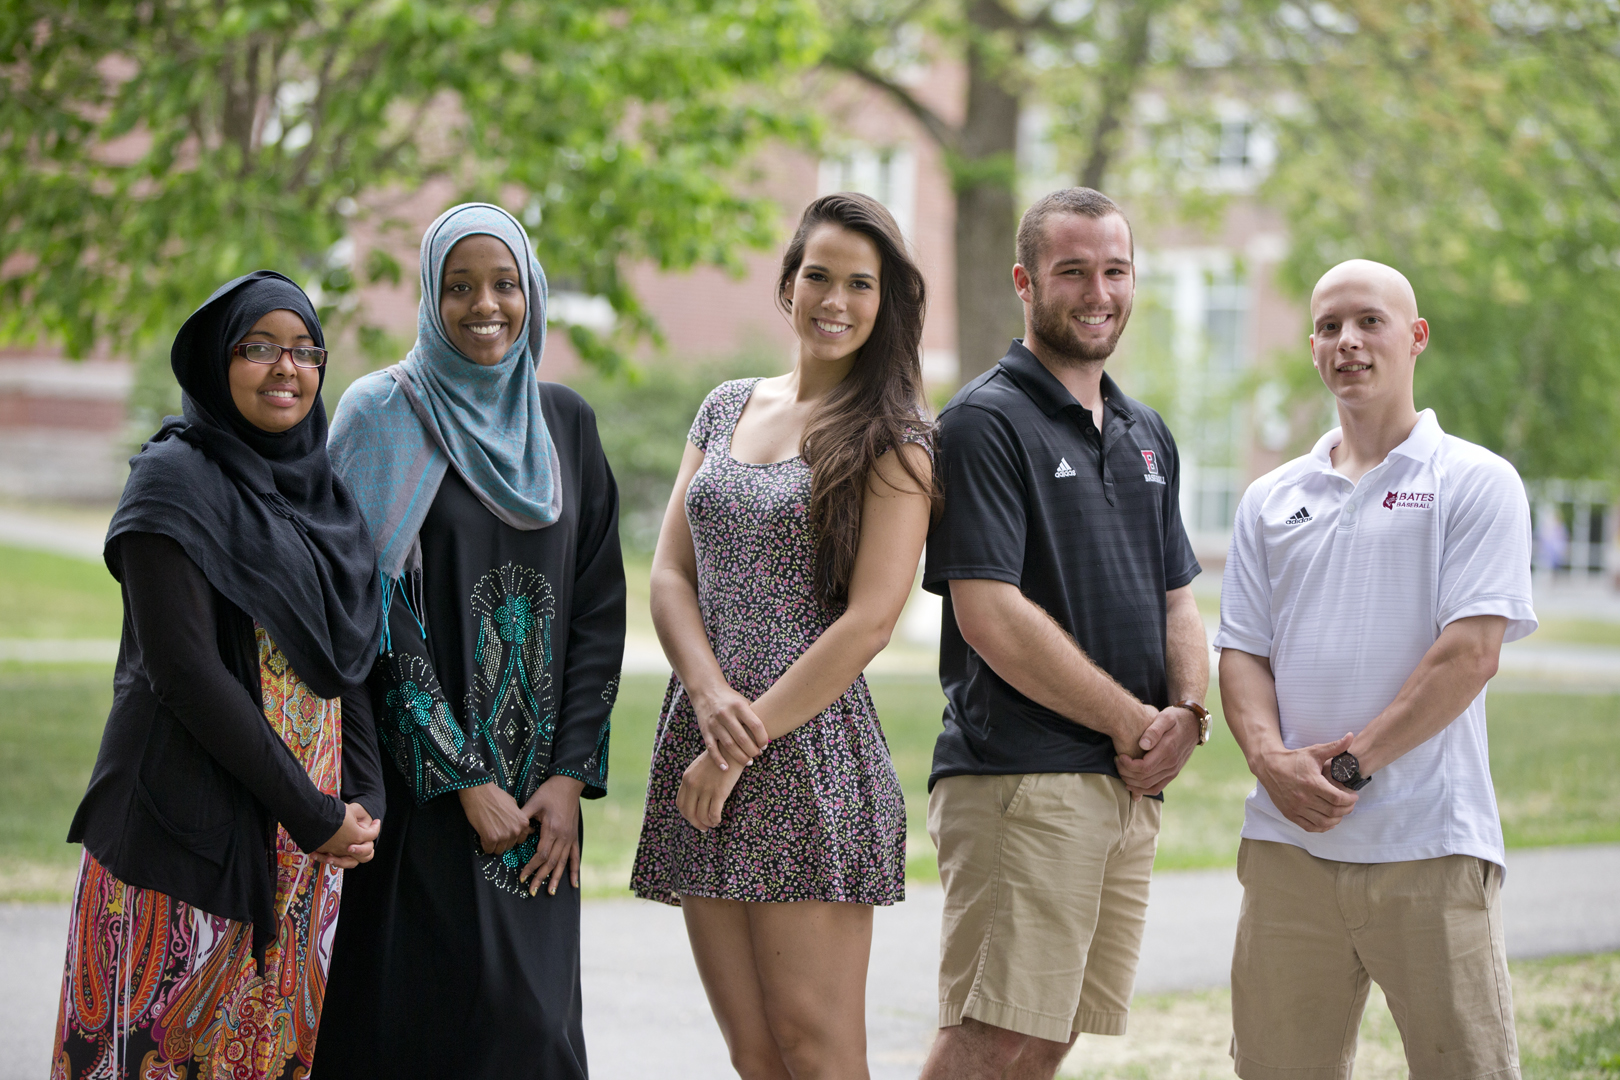 Bates College seniors, left to right, Naima Qambi, Asha Mahamud, Allaina Murphy, Mekae Hyde and Alex Parker are graduating from Bates College on May 31.